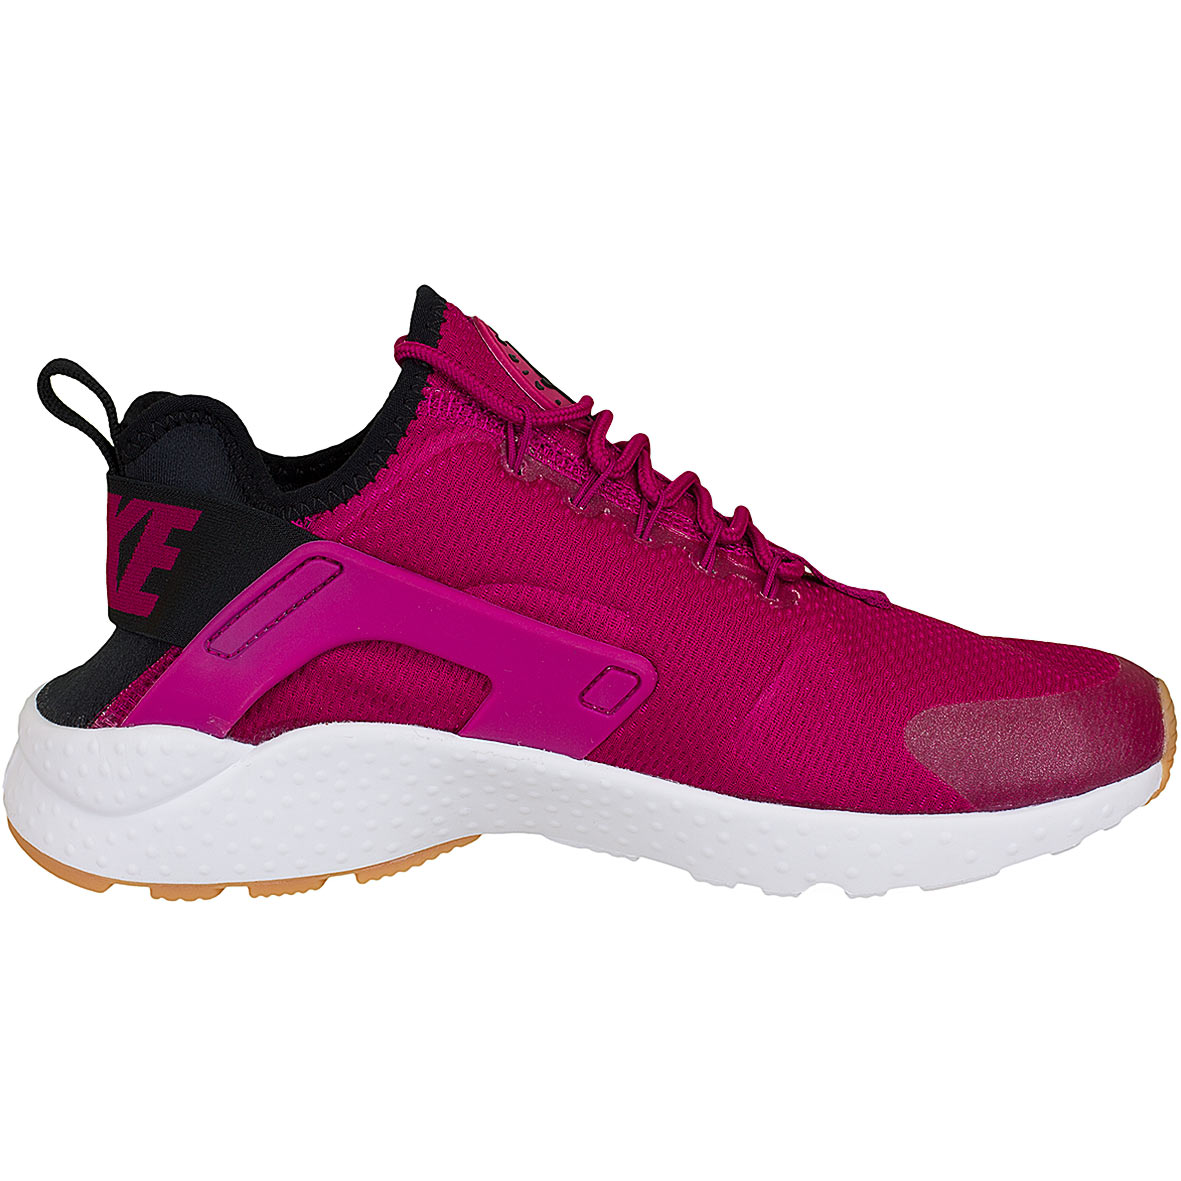 nike damen sneaker air huarache run ultra fuchsia schwarz. Black Bedroom Furniture Sets. Home Design Ideas